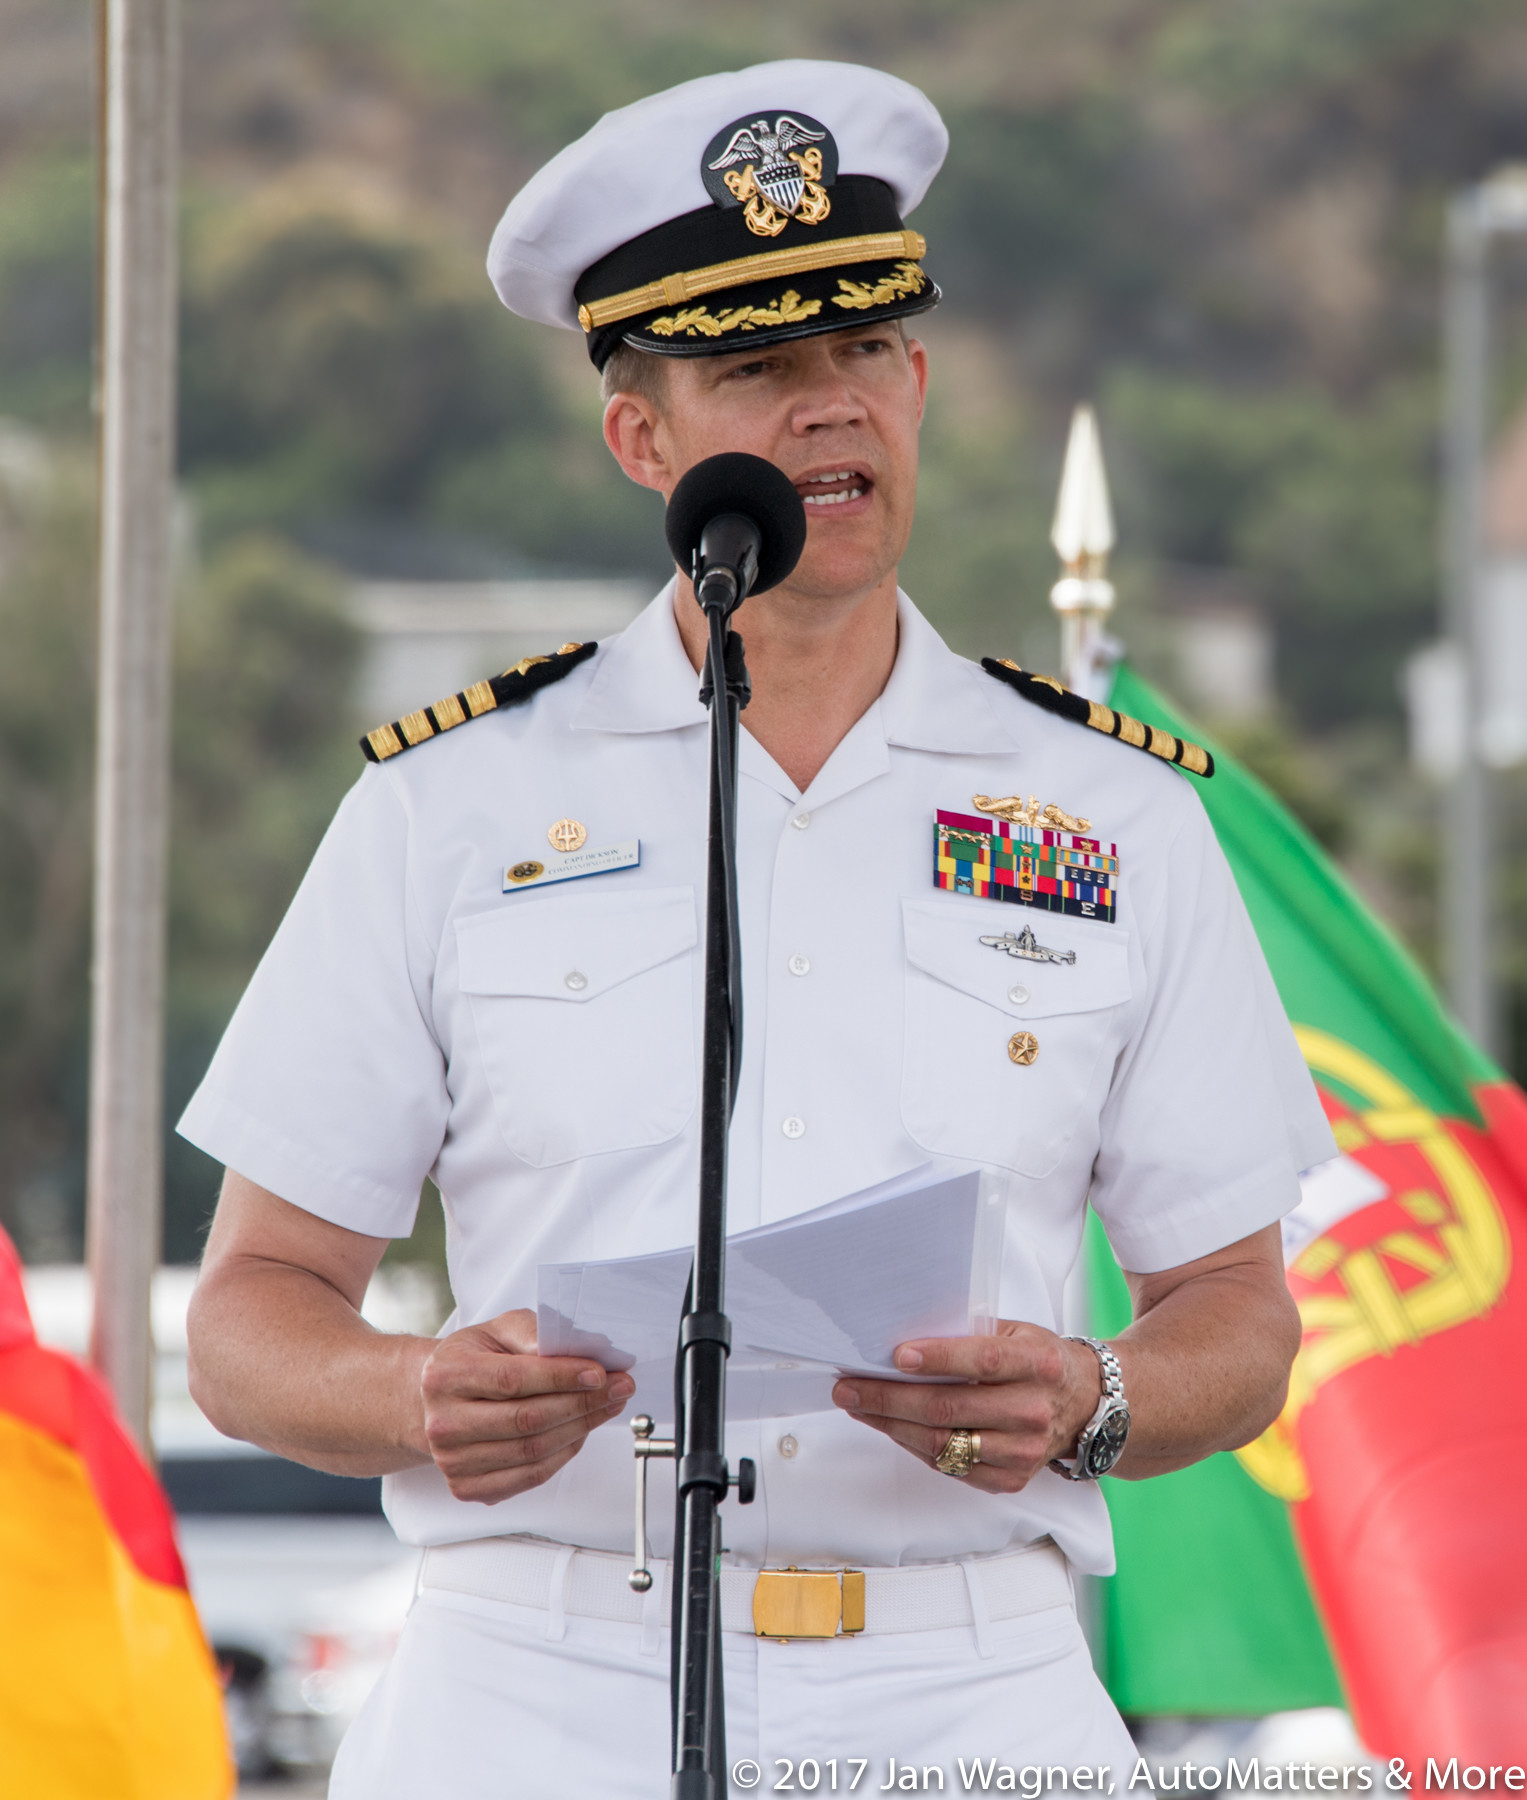 Opening remarks by Captain Dickson, Commanding Officer